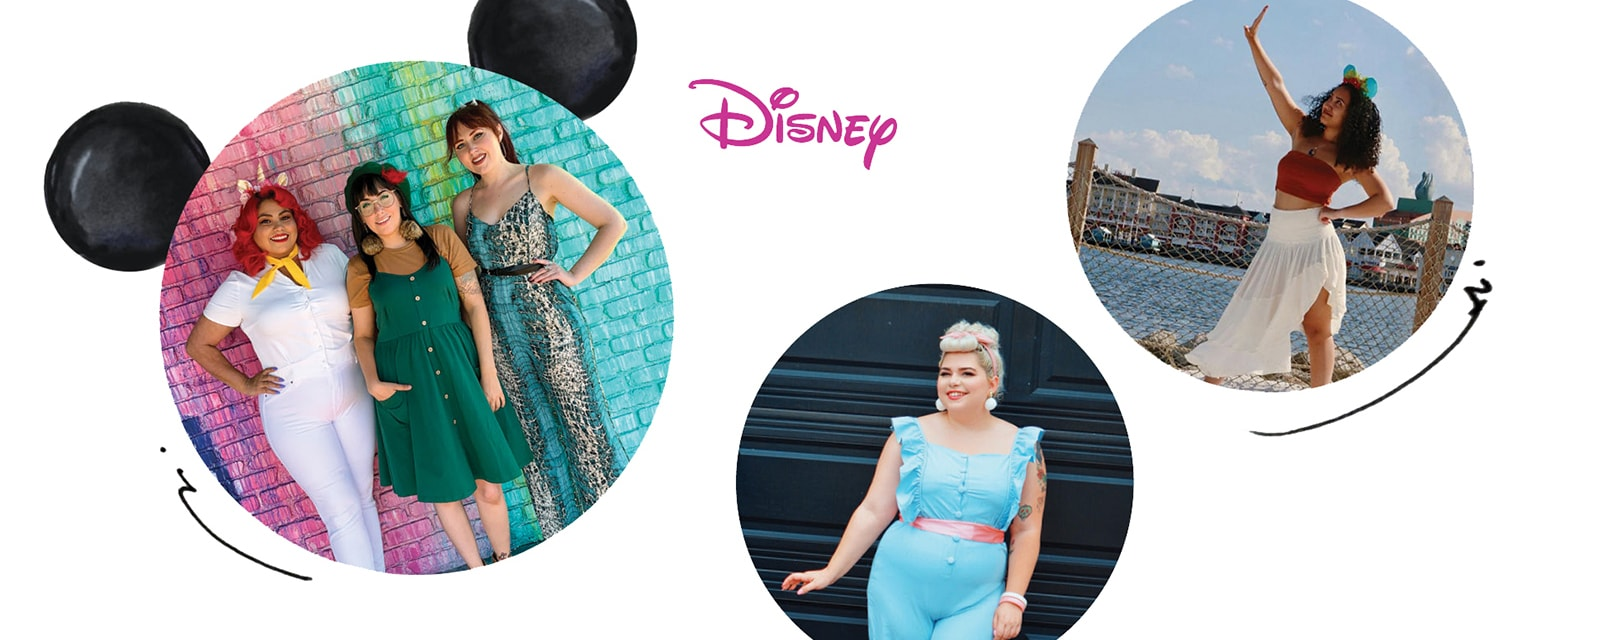 DisneyBound: Dress Disney and Make It Fashion by Leslie Kay book cover